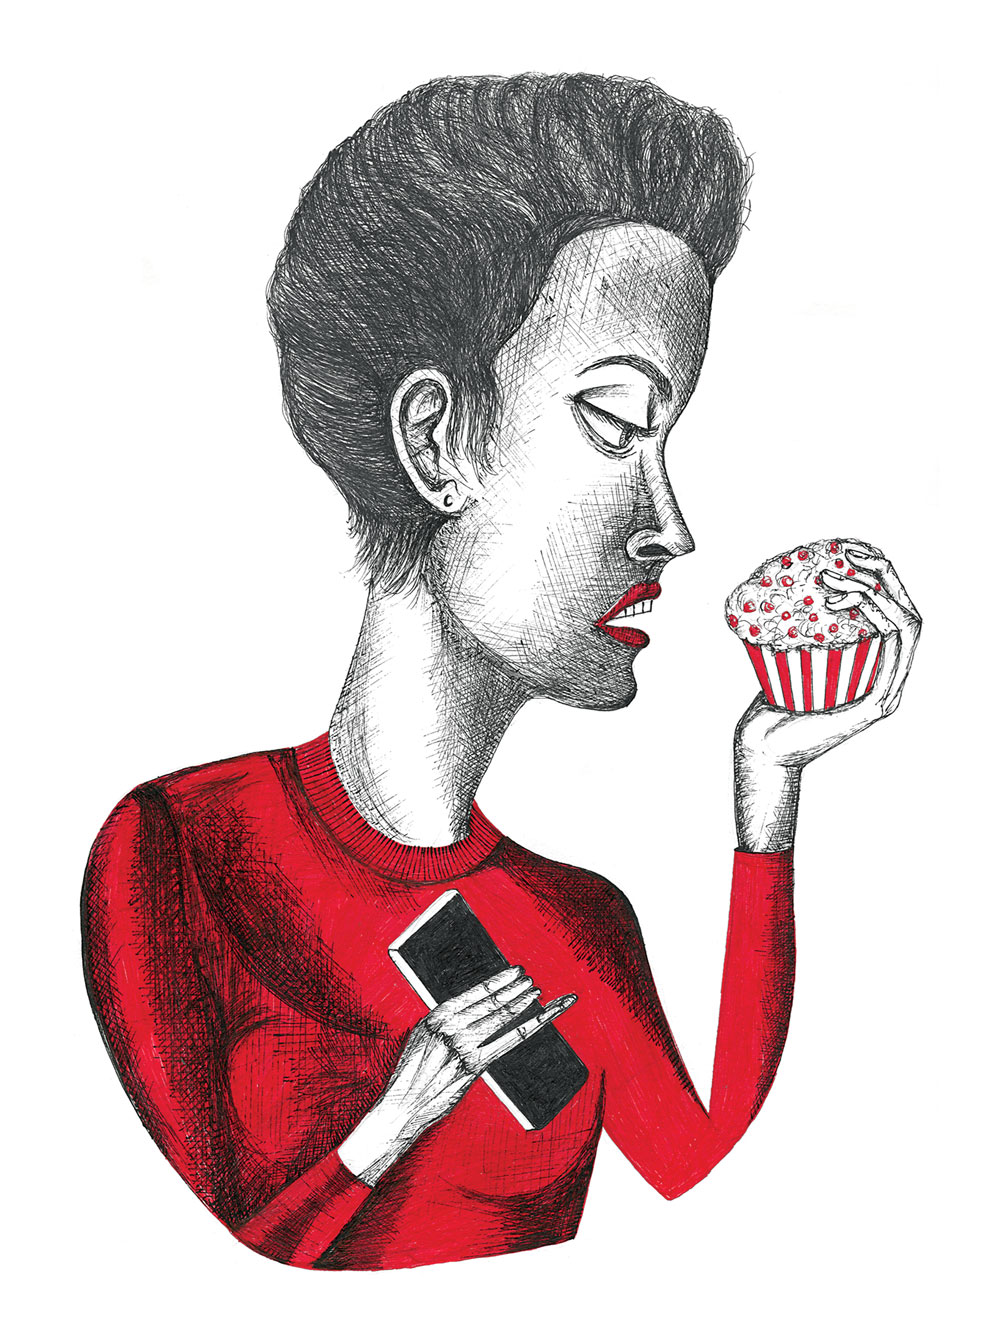 A woman holding a cupcake stares into its sprinkled frosting, ignoring the phone she holds in her other hand.